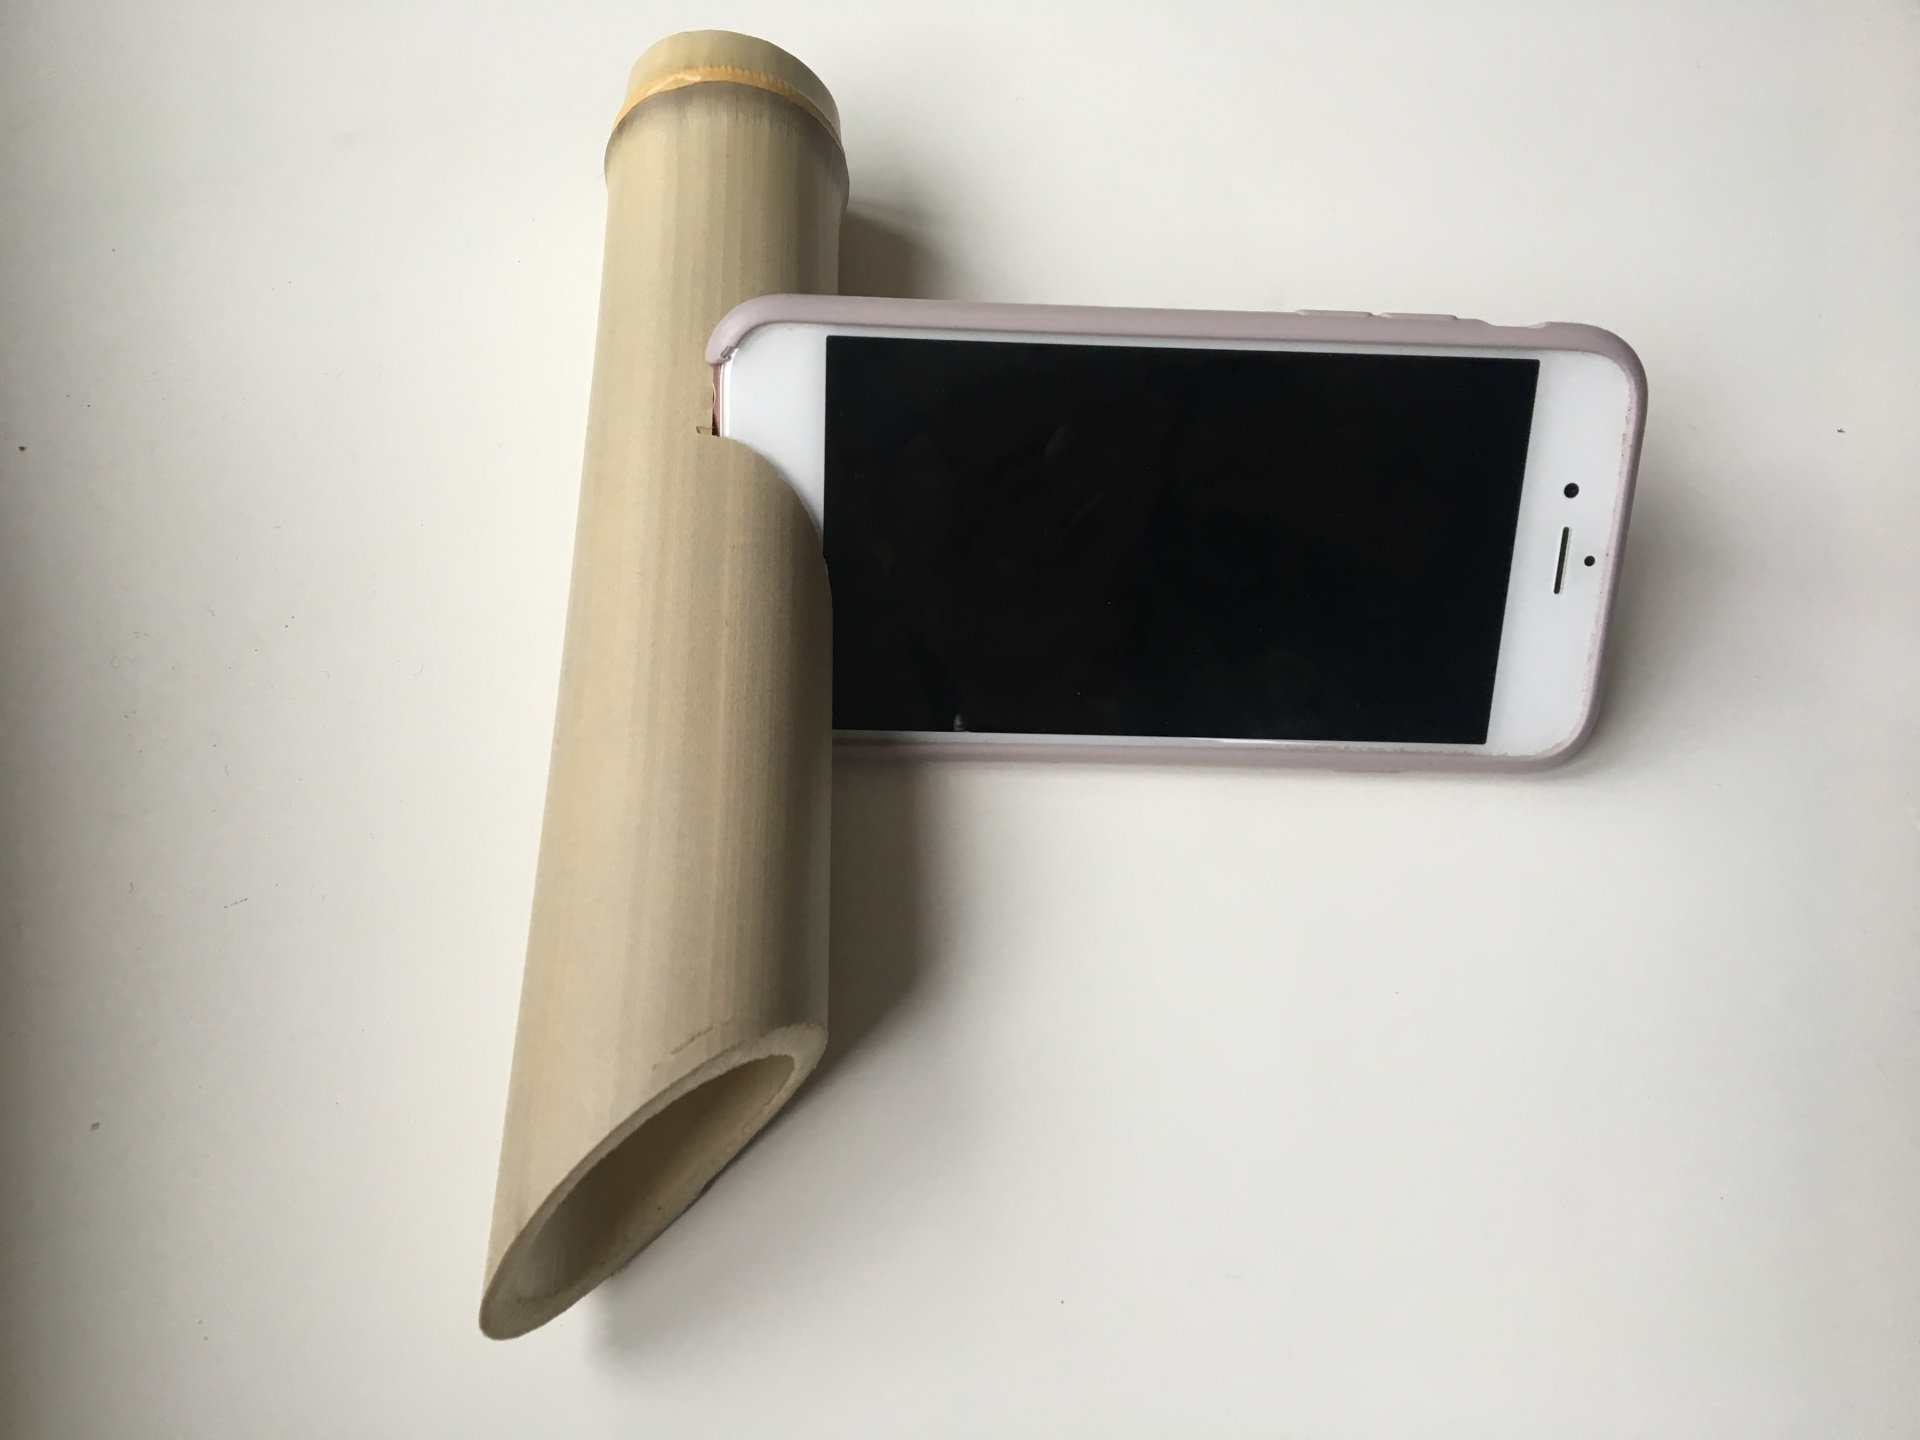 Phone amplifier and holder